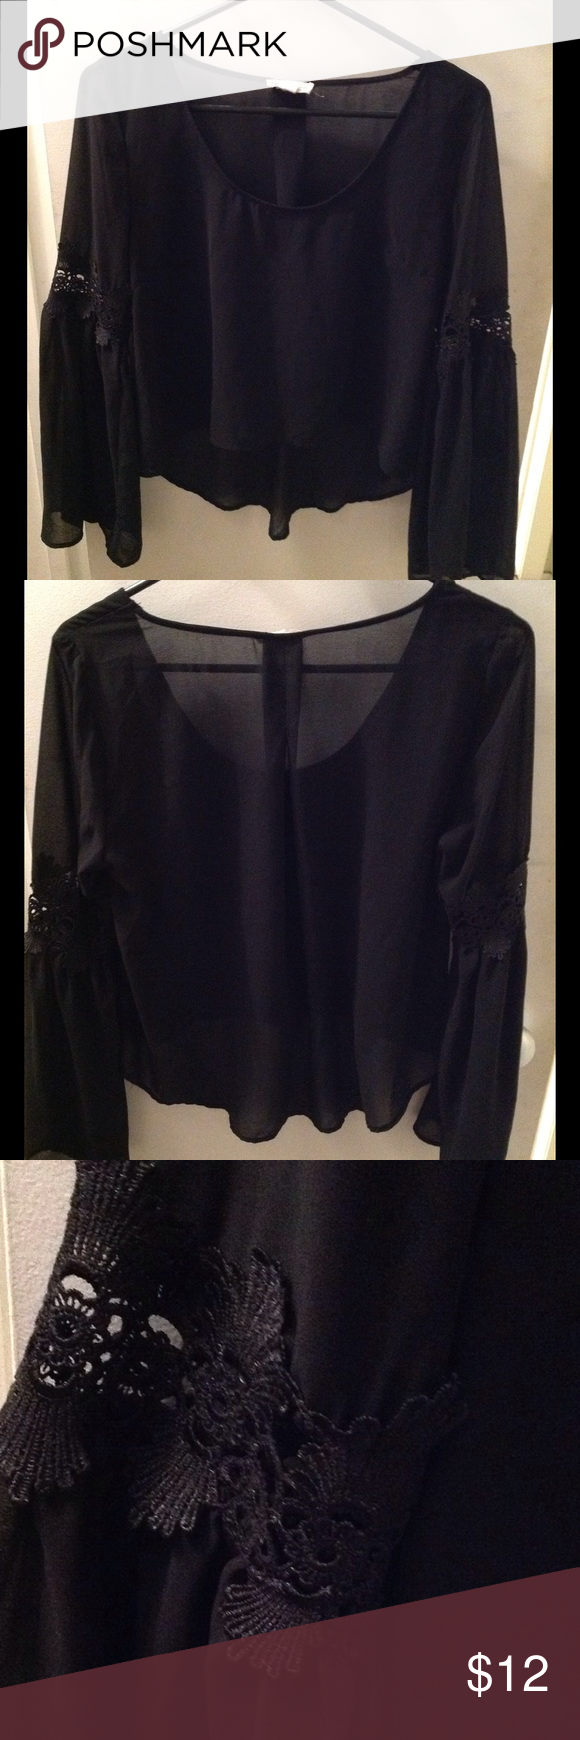 Beautiful Blouse Long sleeved asymmetric blouse with bell sleeves and beautiful appliqués on sleeves. Short in front and longer in back. Tops Blouses